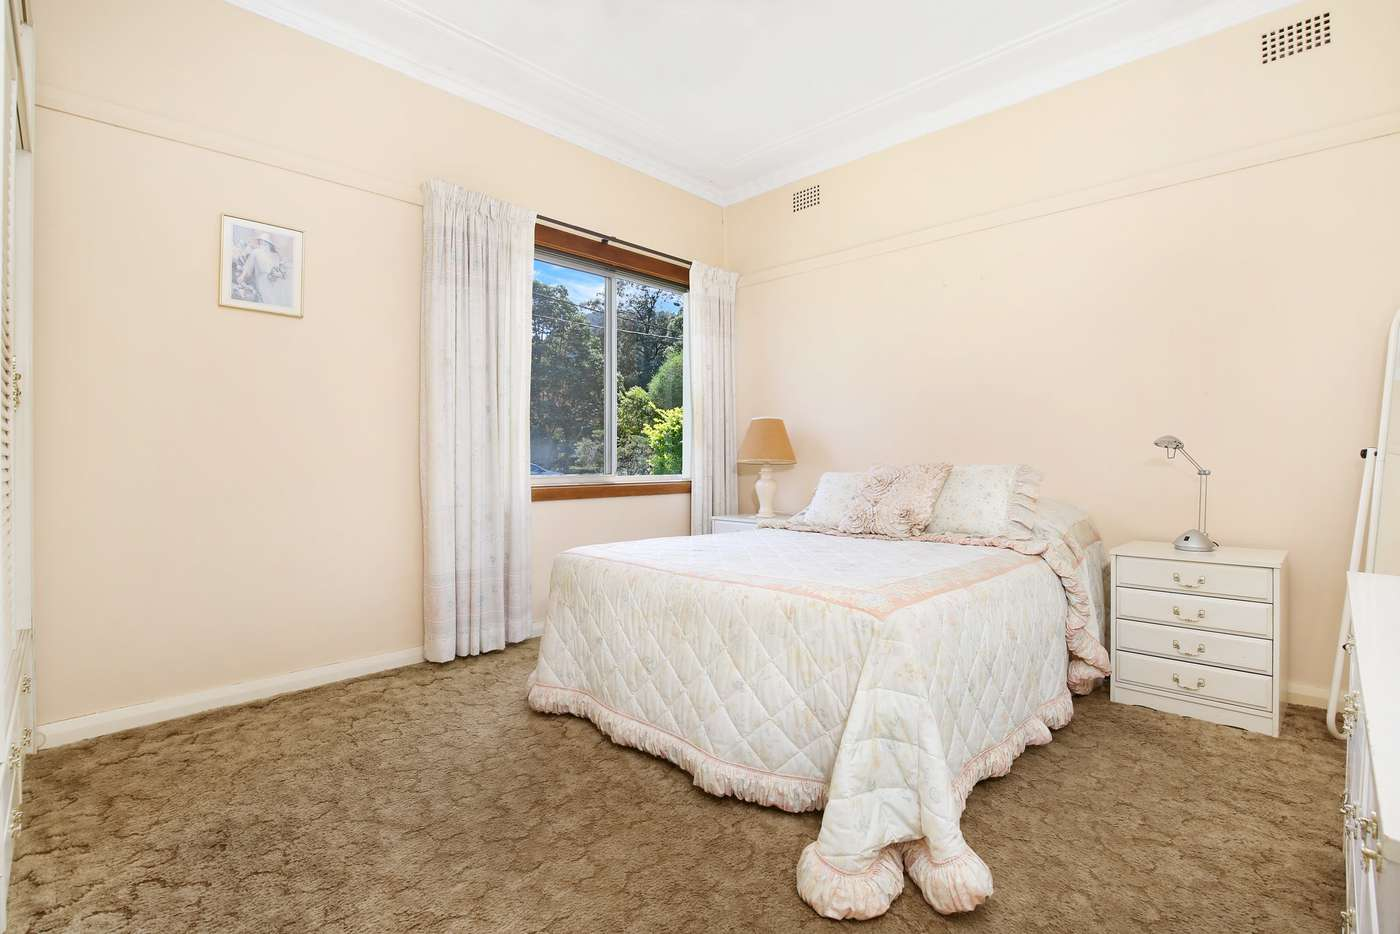 Sixth view of Homely house listing, 7 Attunga Street, Keiraville NSW 2500